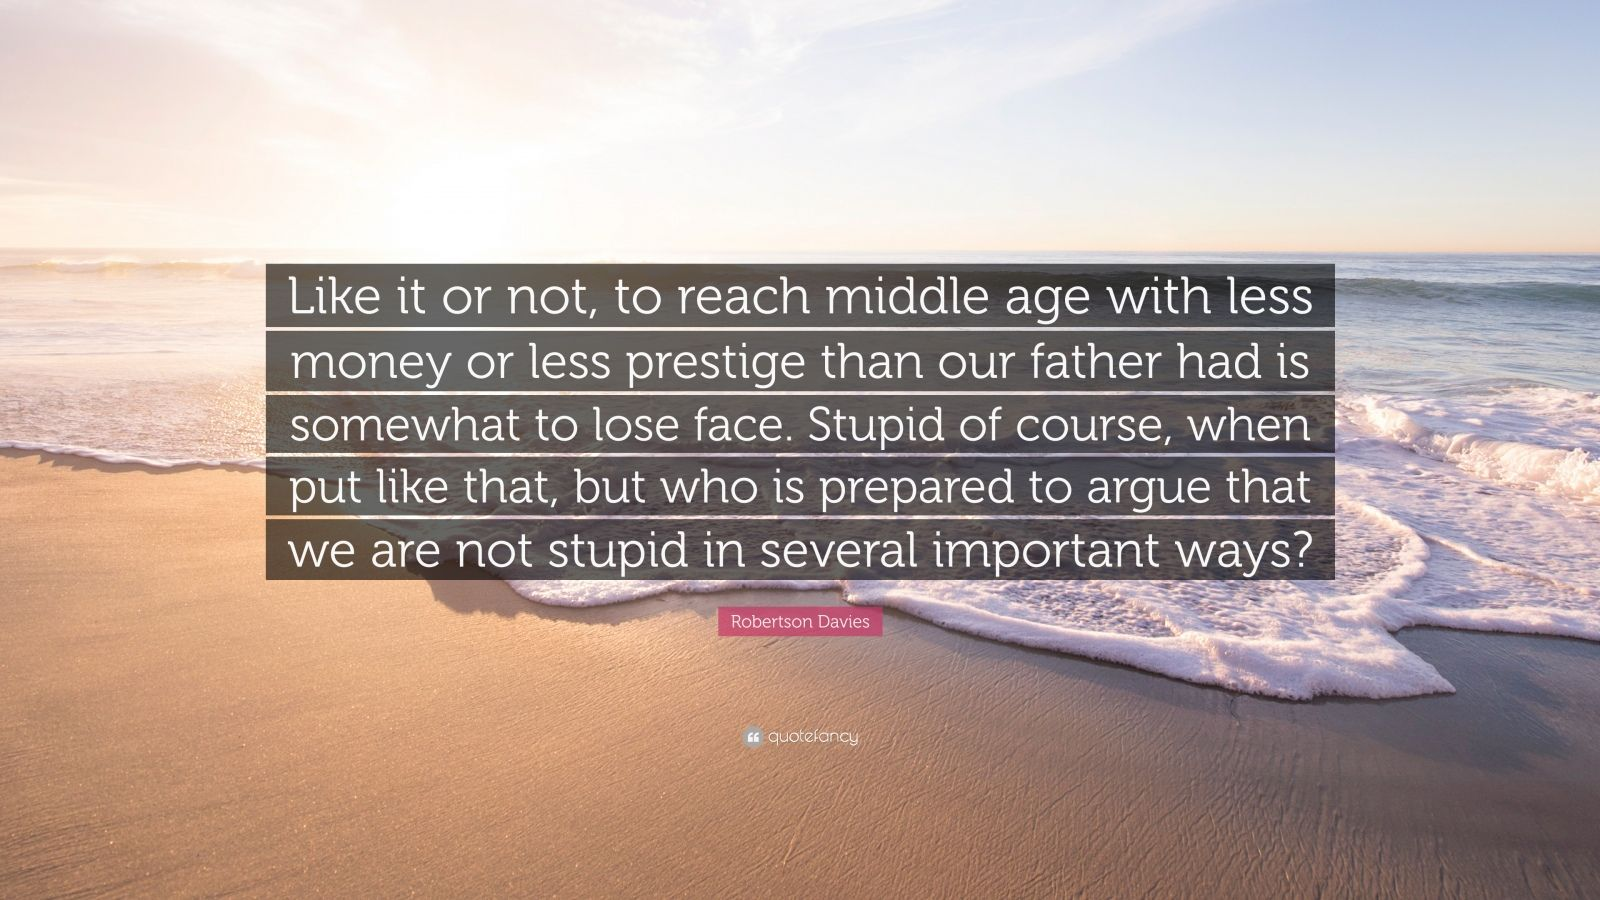 """Robertson Davies Quote: """"Like it or not, to reach middle age with less money or less prestige than our father had is somewhat to lose face. Stupid of course, when put like that, but who is prepared to argue that we are not stupid in several important ways?"""""""